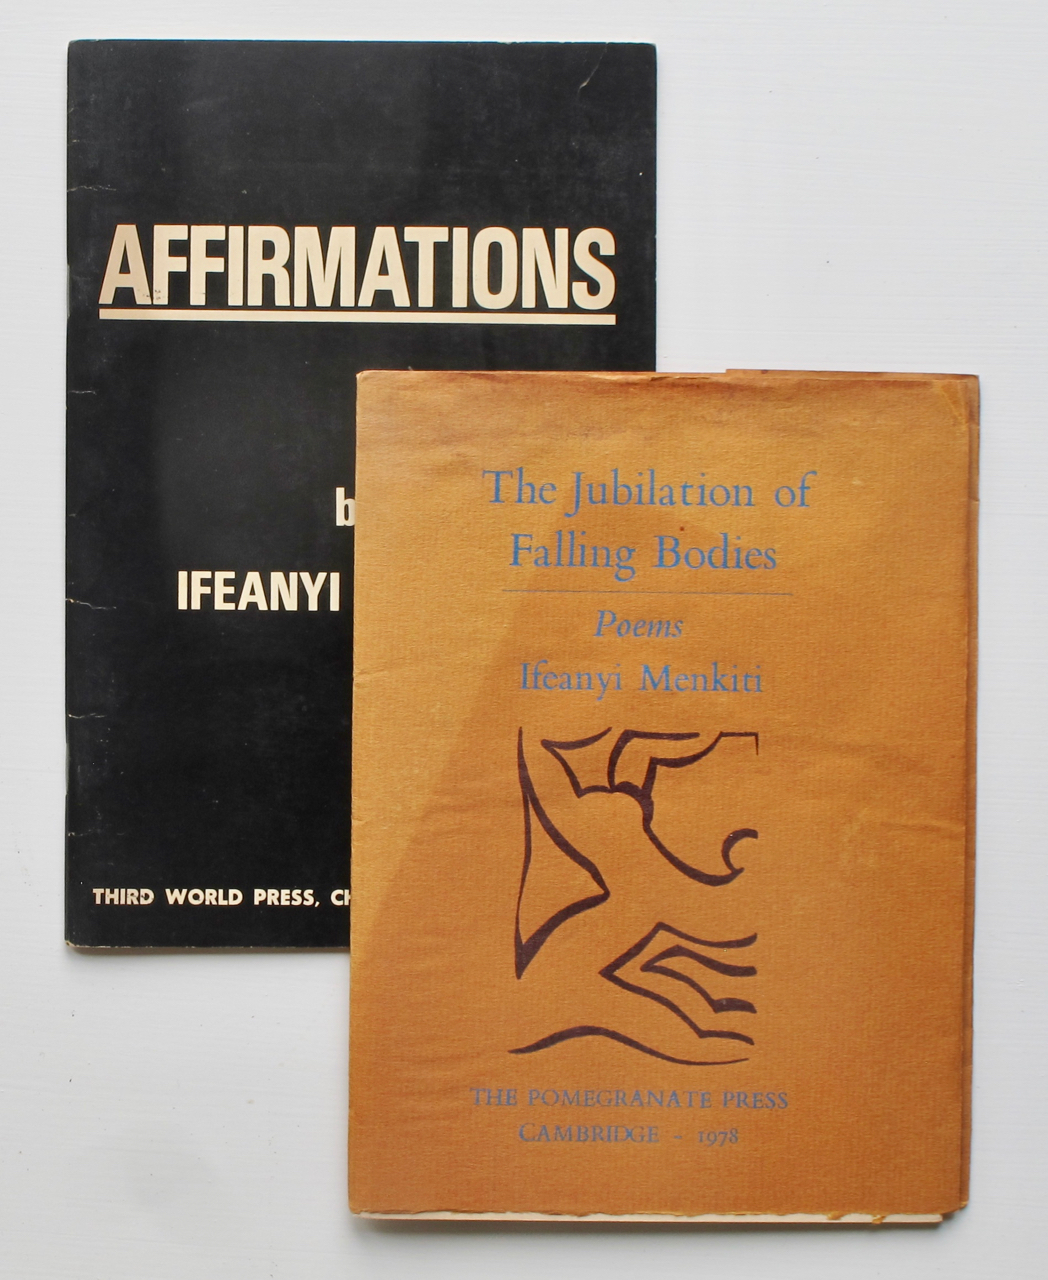 The Jubilation of Falling Bodies: Poems.[WITH:]Affirmations. Ifeanyi Menkiti.